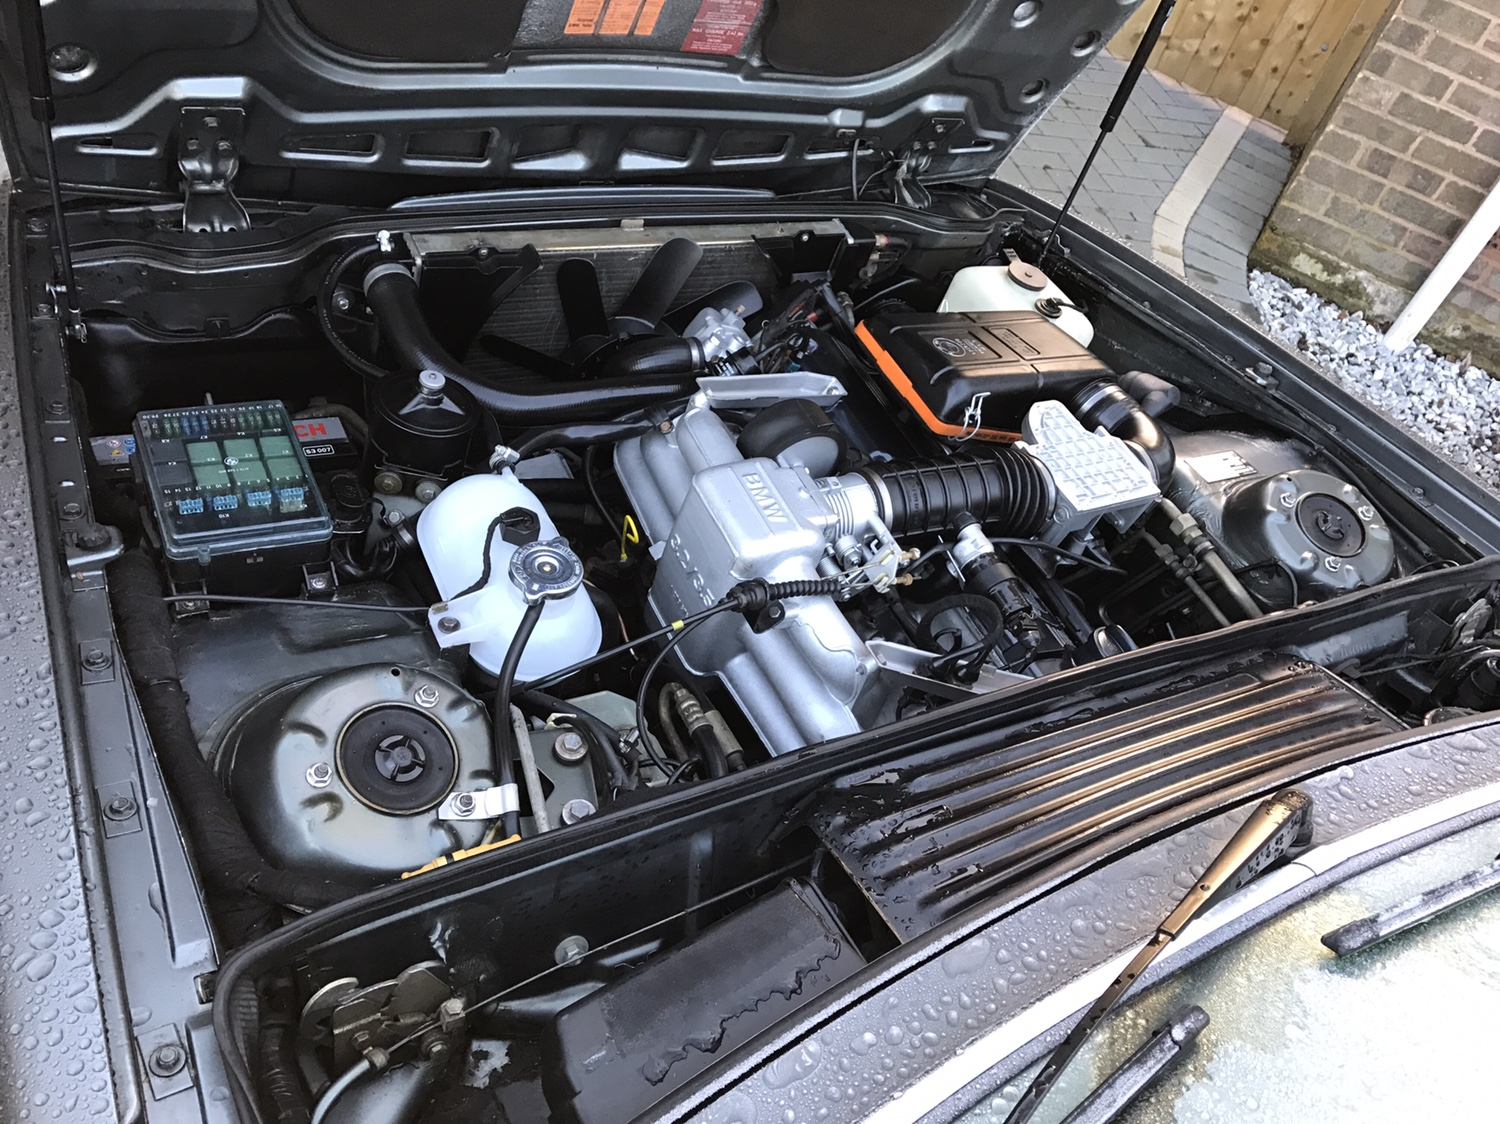 1987 Bmw 635csi Euro Project Thread Page 3 E24 Engine Diagram Finally Got My Brand New Header Tank And Fitted It Really Sets The Bay Off Super Happy With How This Work Has Turned Out Should Keep Running